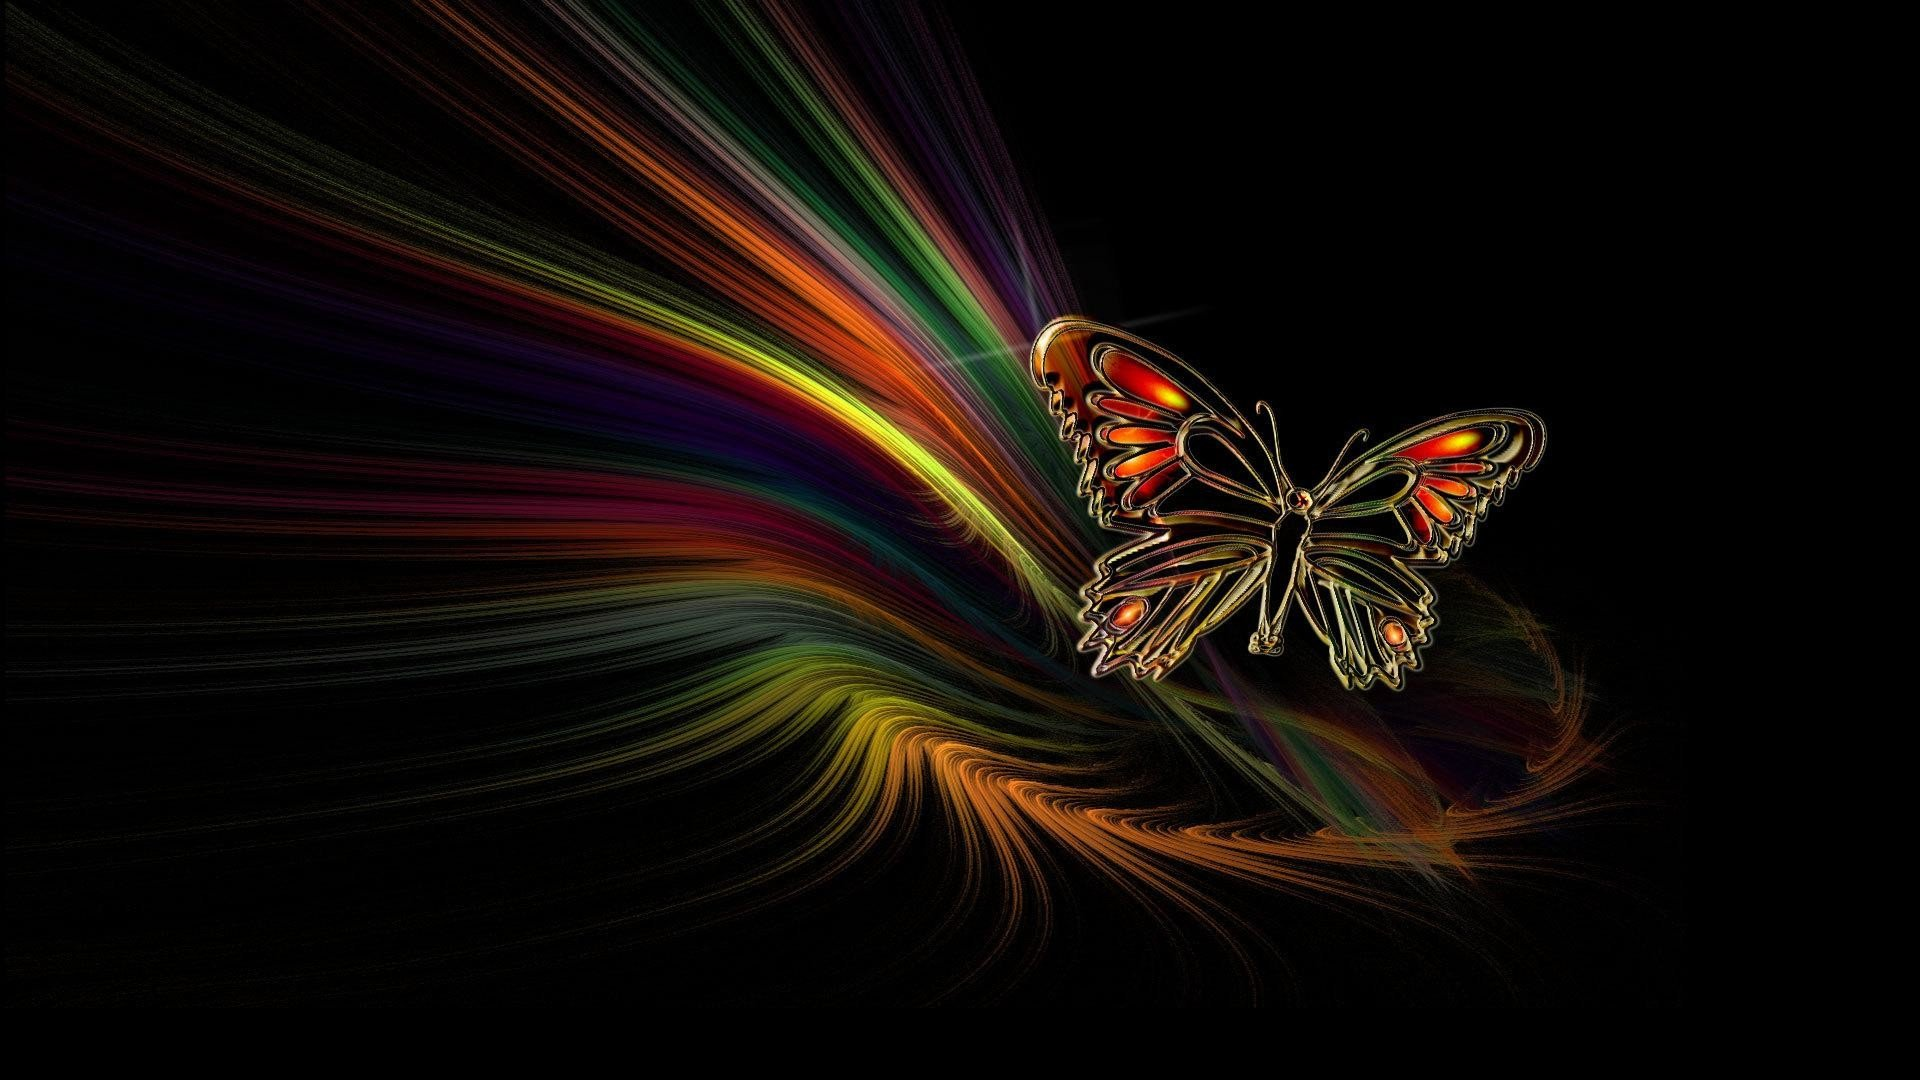 Moving Butterfly Wallpaper